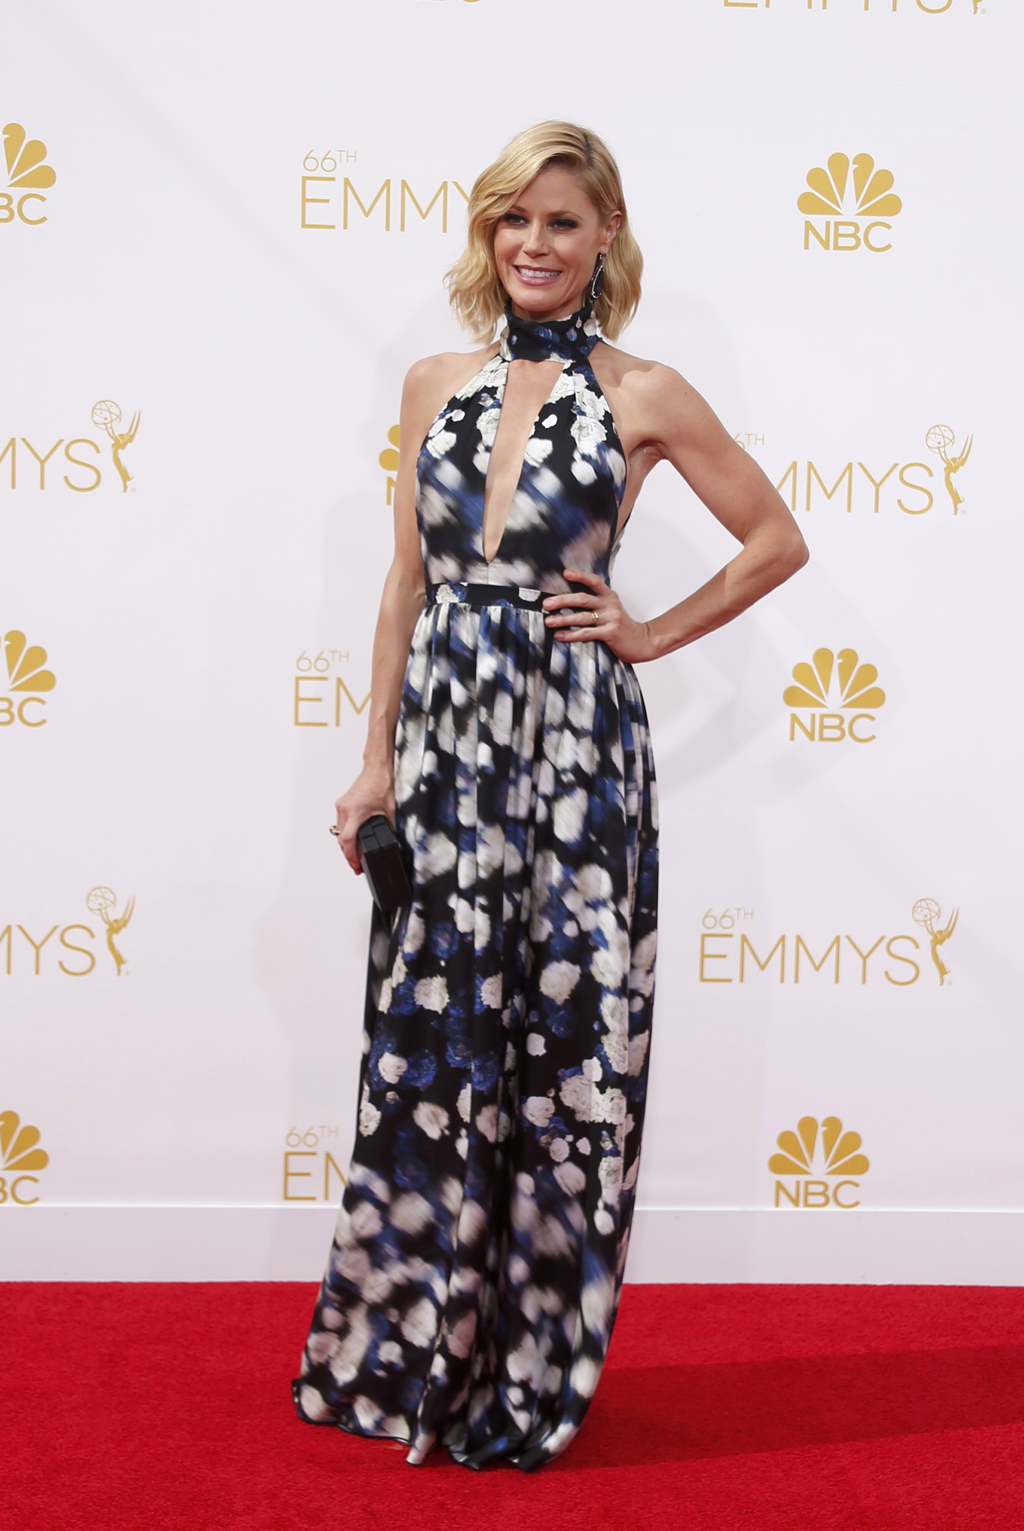 Julie Bowen arrives at the 66th Primetime Emmy Awards in Los Angeles